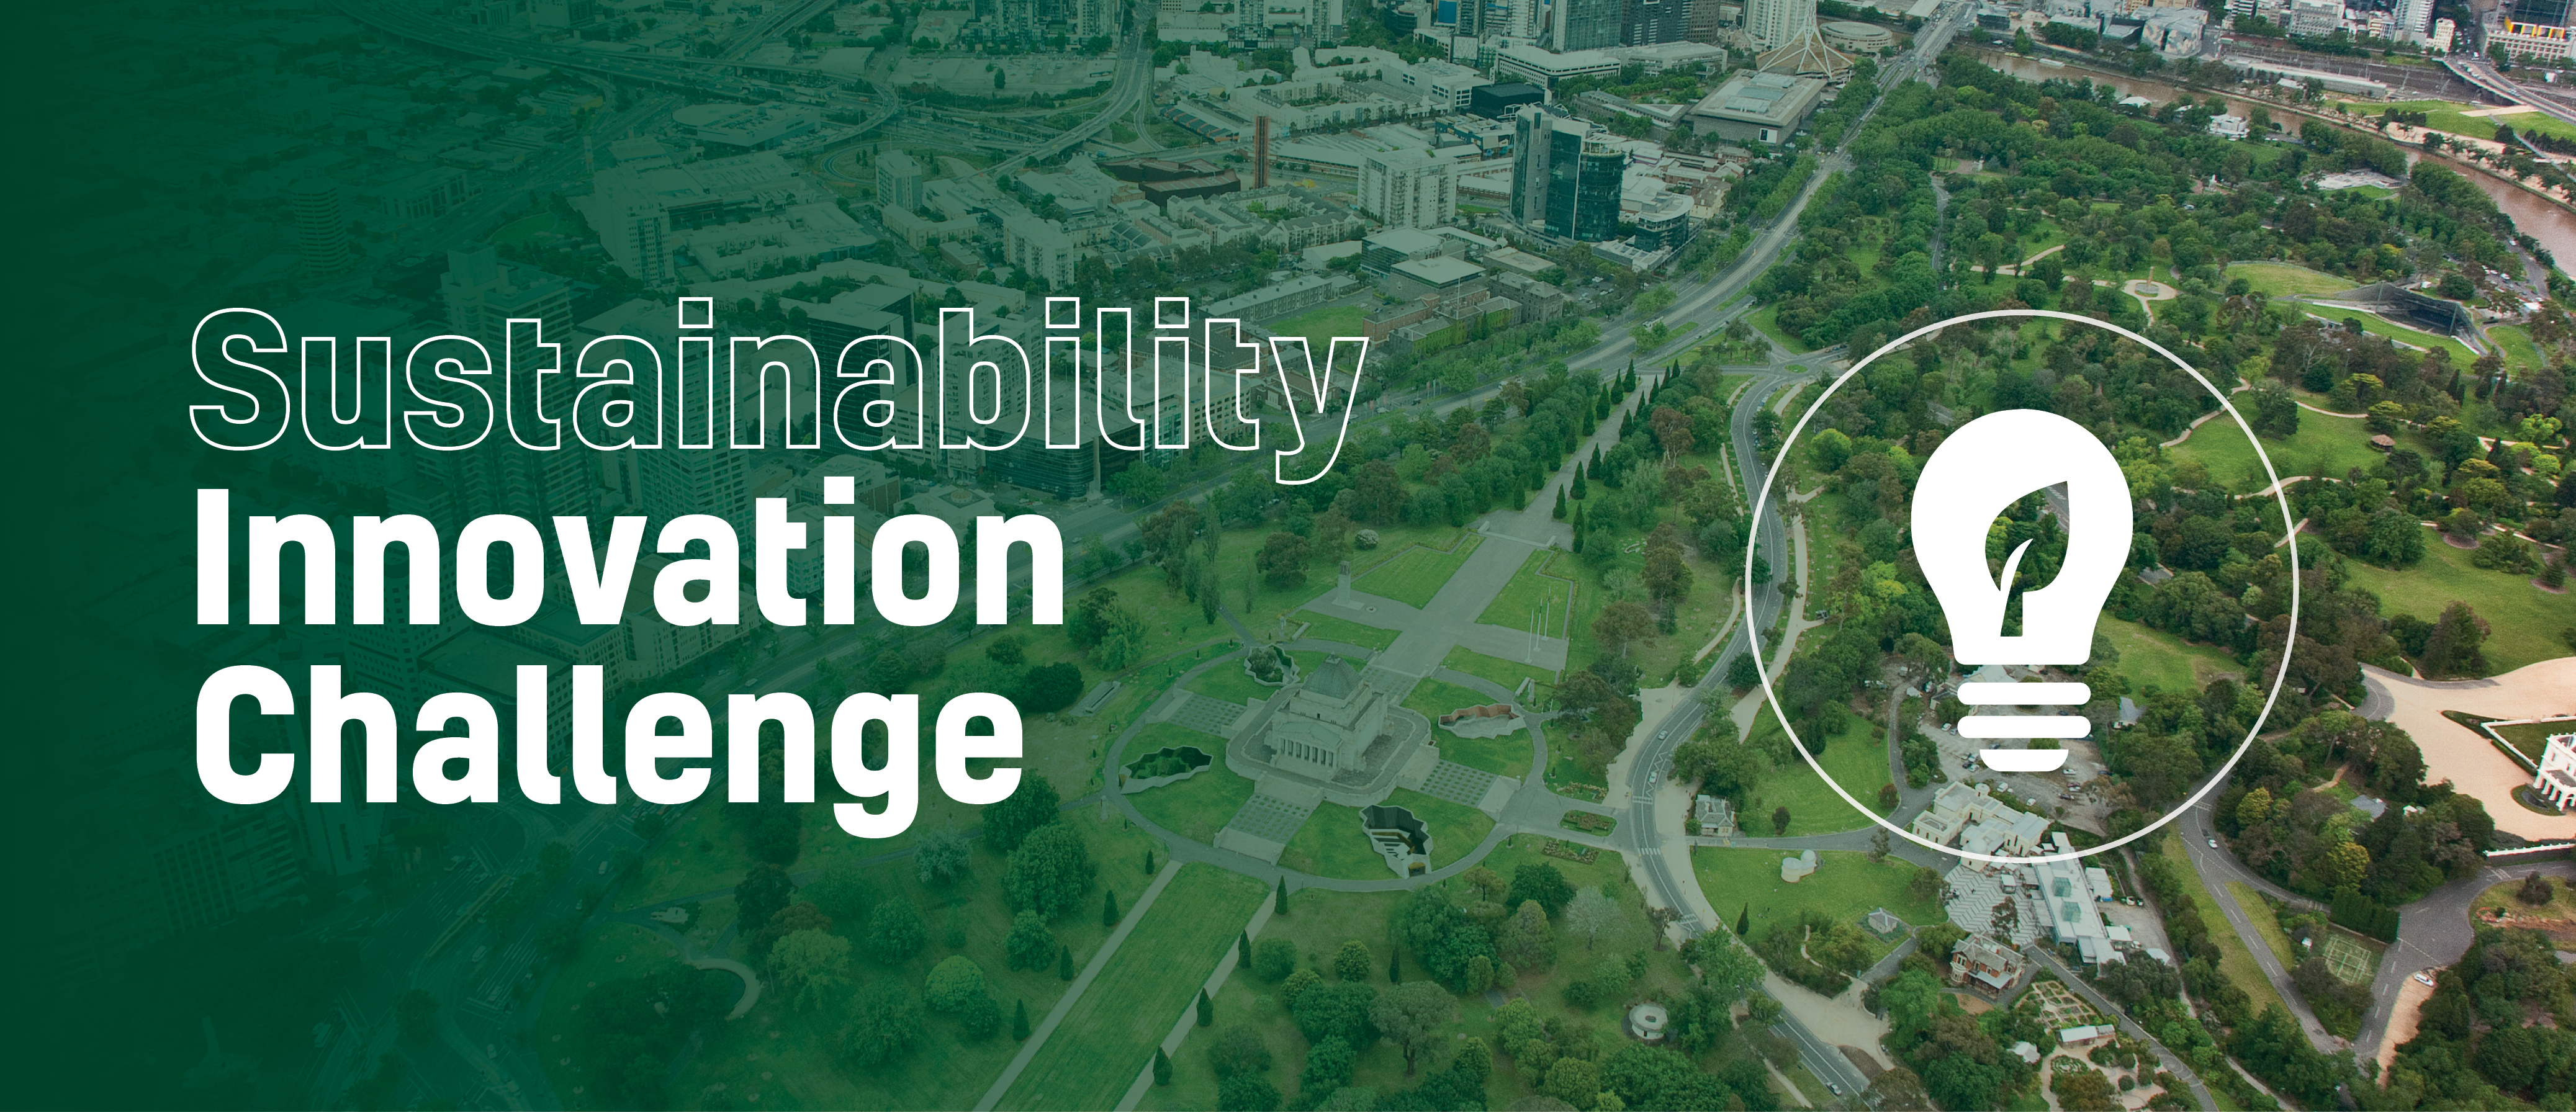 Sustainability Innovation Challenge on a green background with a leaf inside a lightbulb